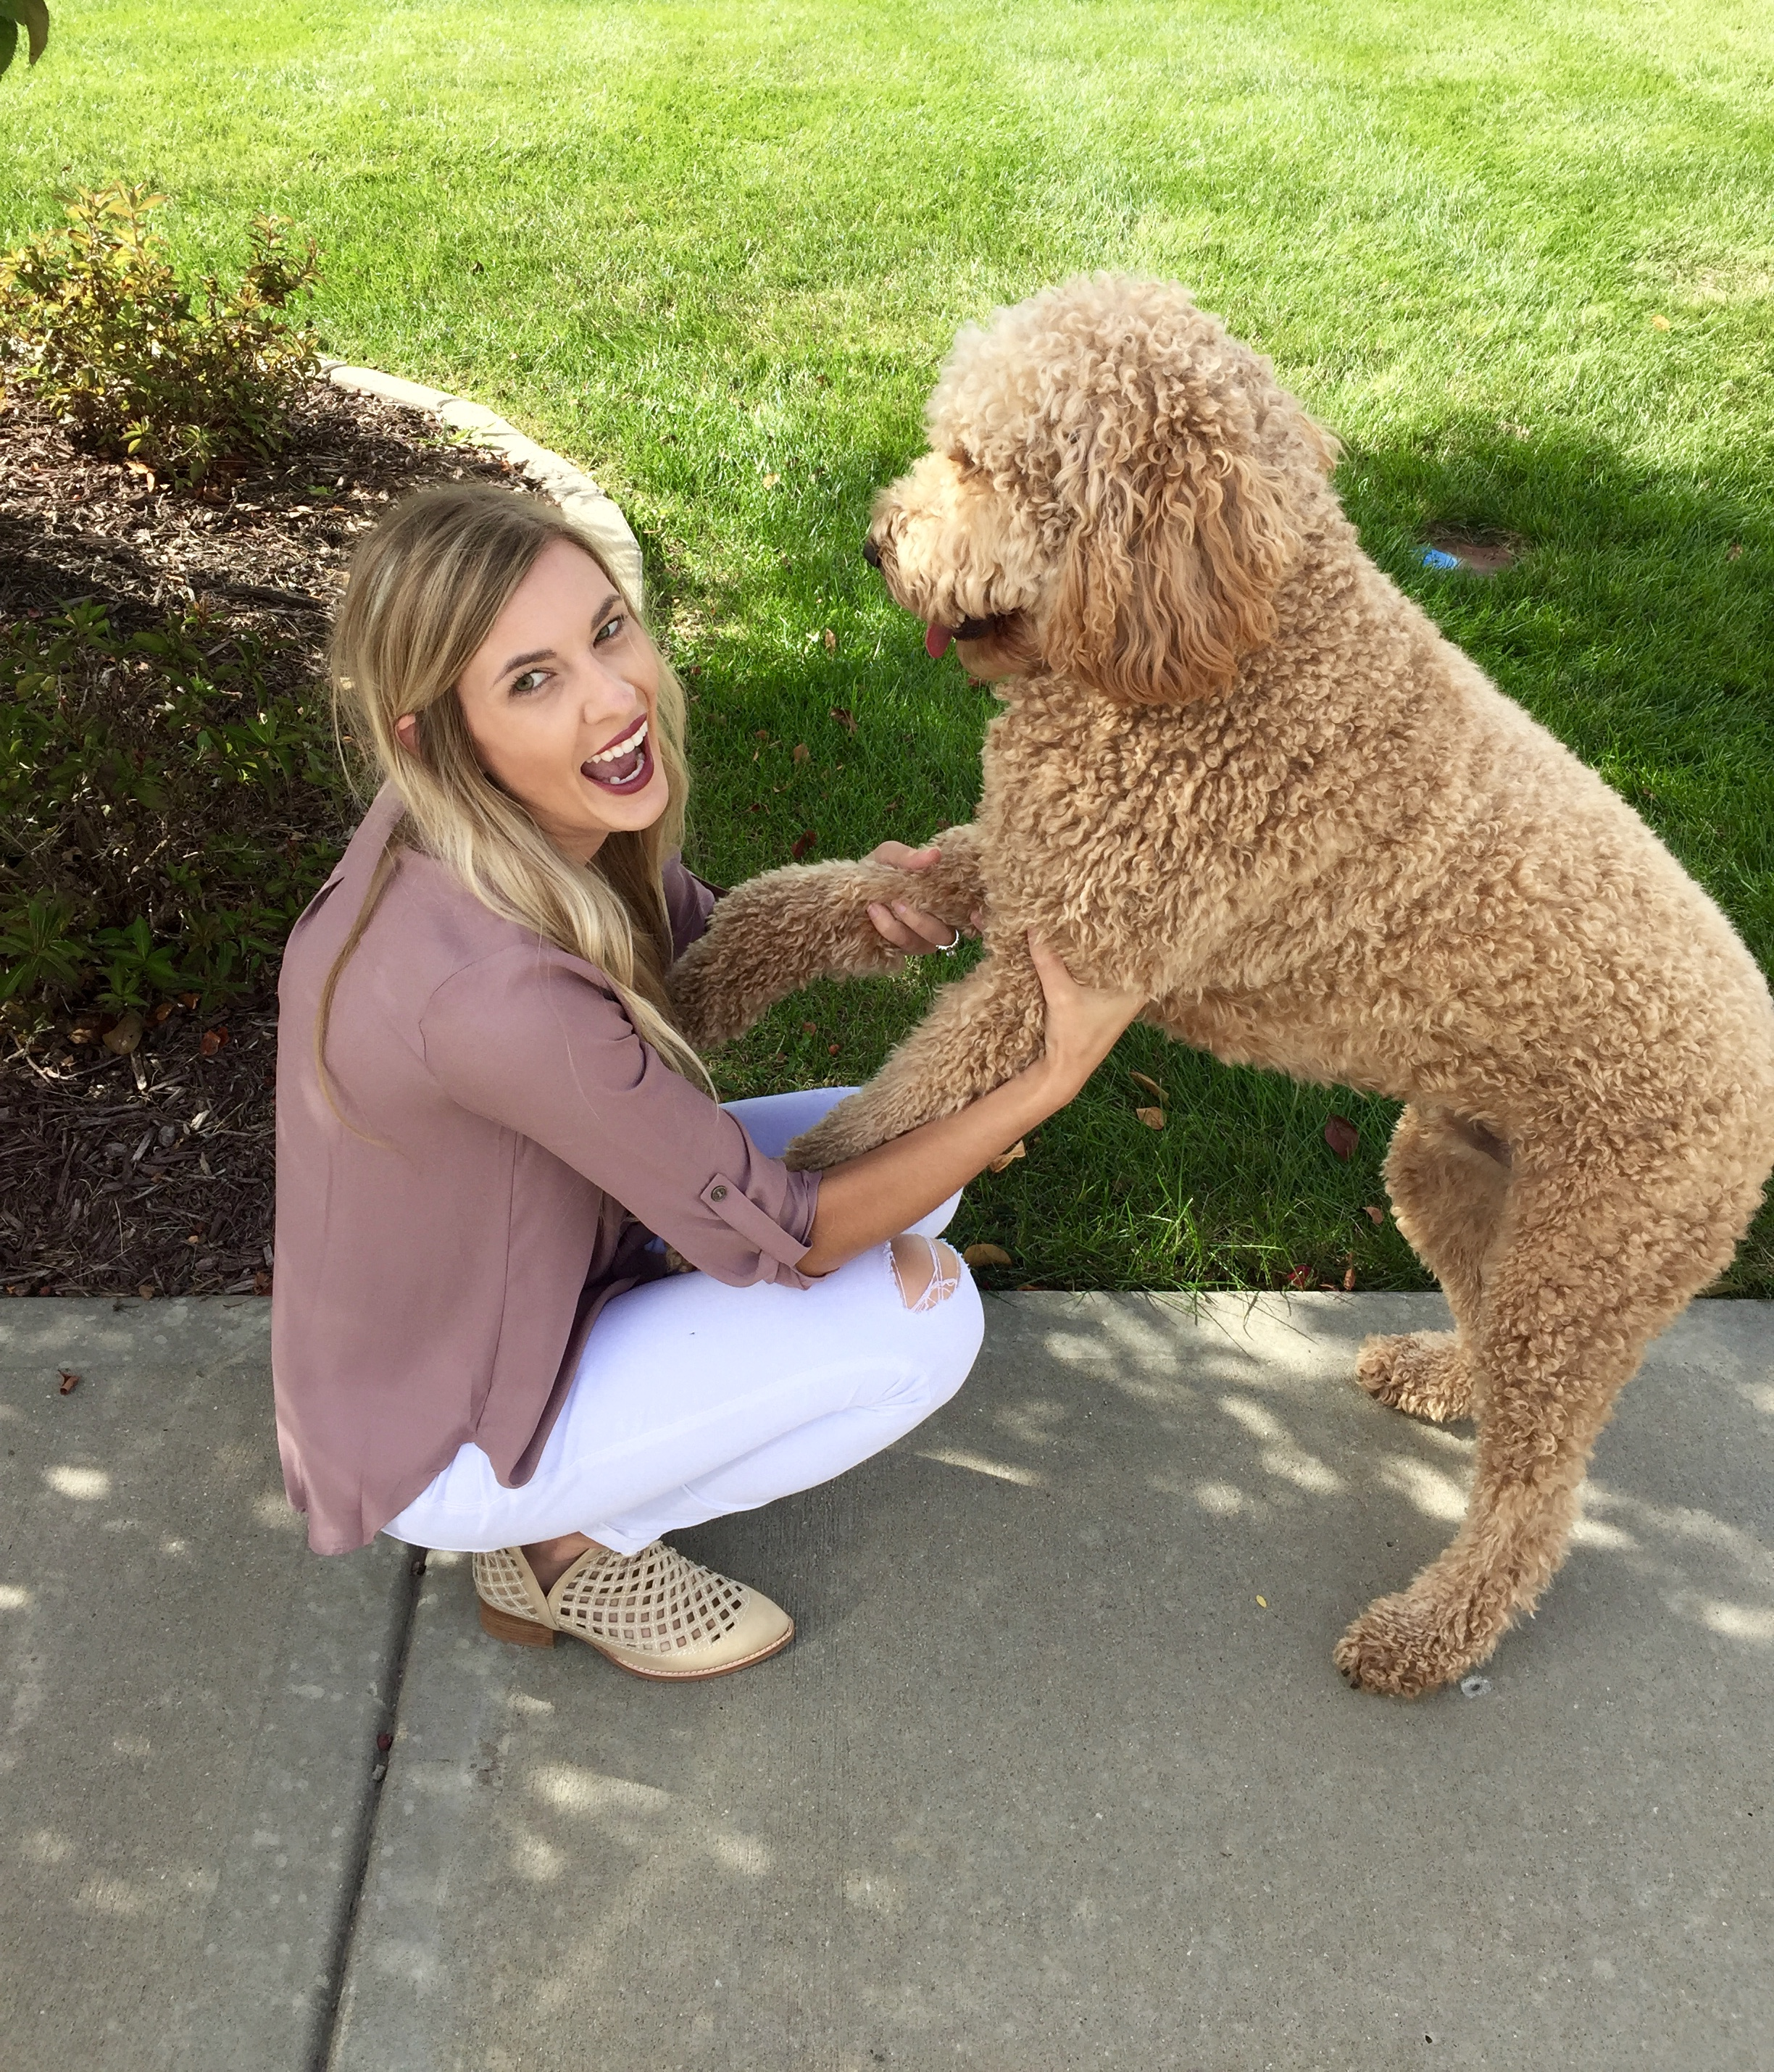 It's not always easy getting a 2 year old giant puppy to cooperate...